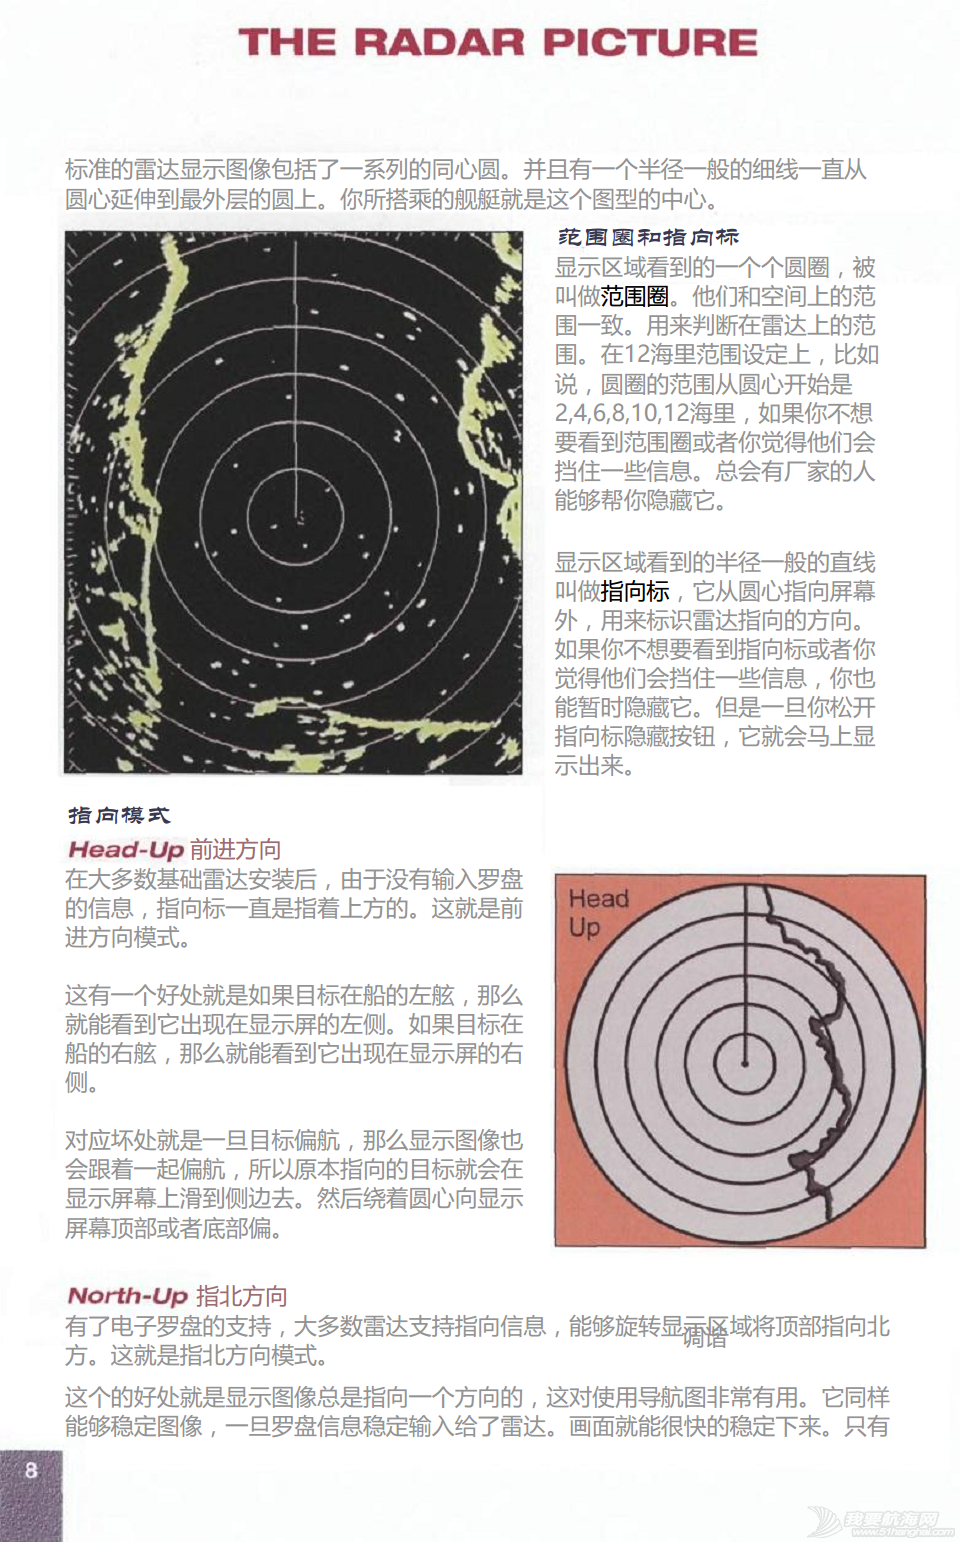 小伙伴,英文版,著作权,中文,帆船 ©RYA《雷达使用简介》An introduction to Radar.完稿 10